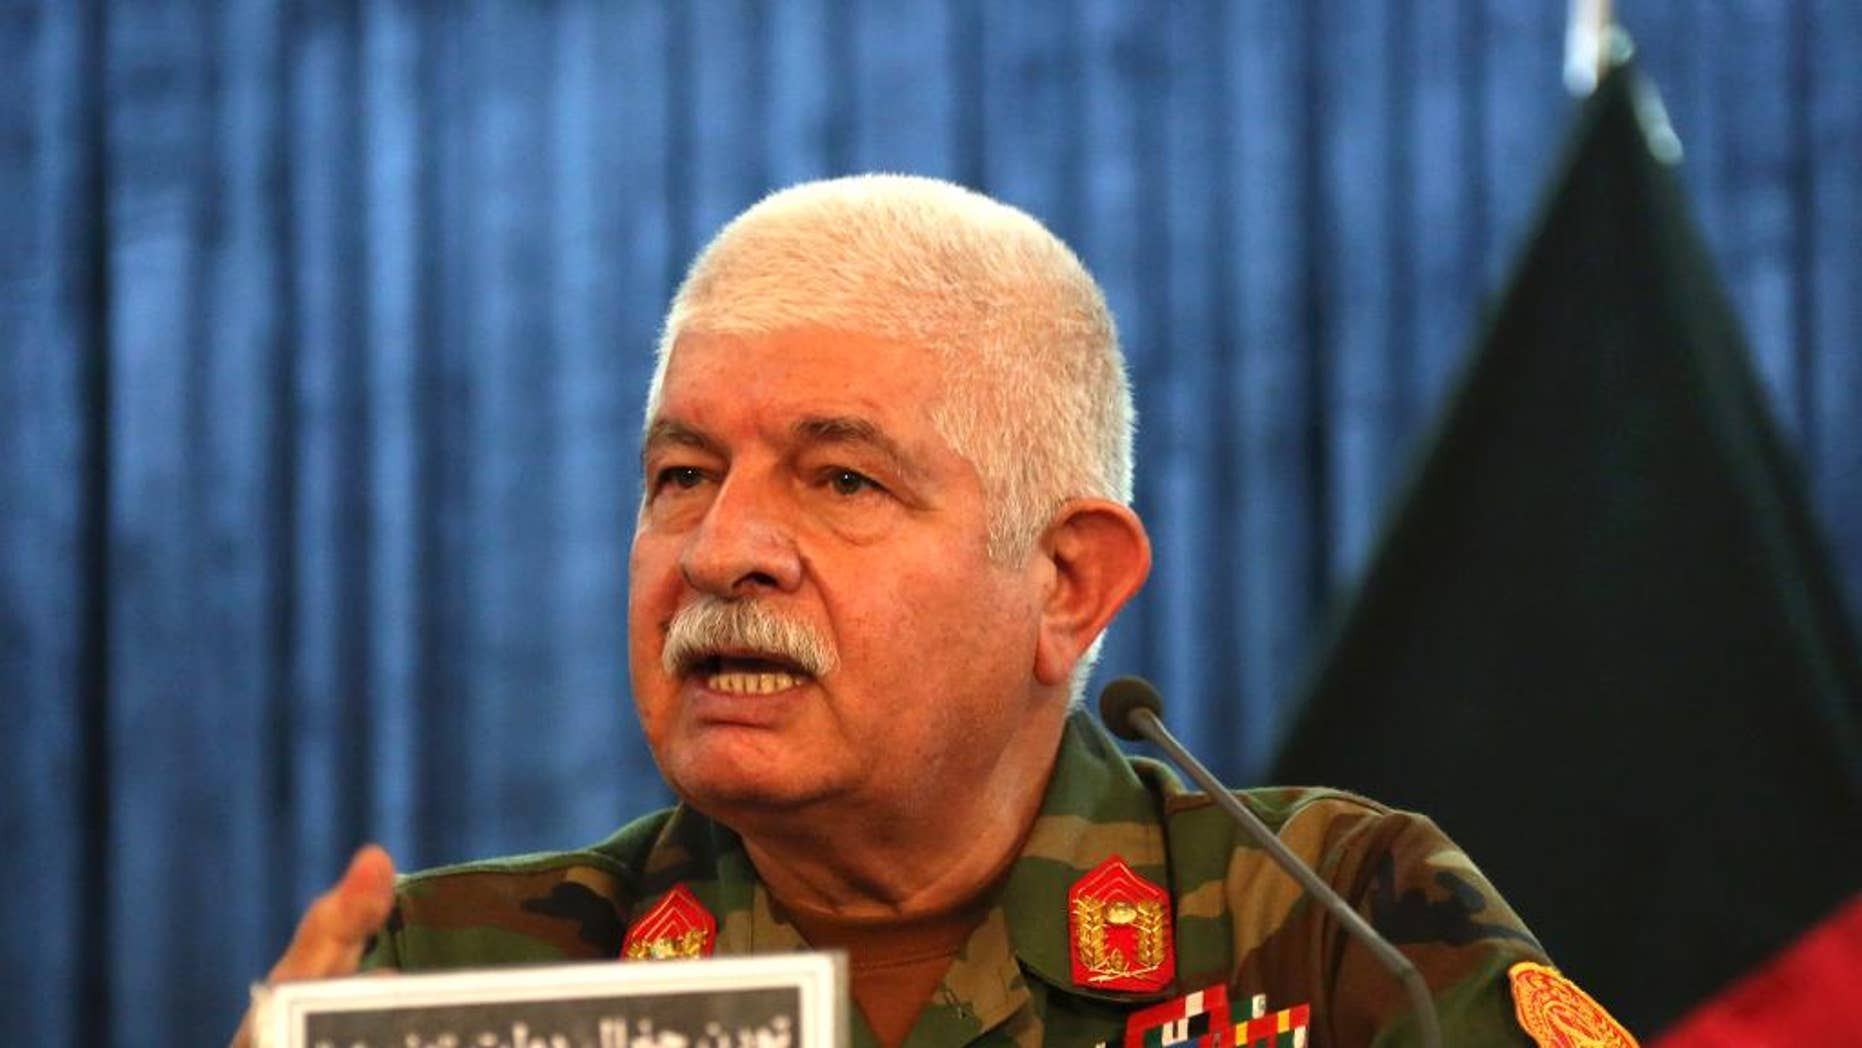 Gen. Dawlat Waziri, spokesman for the Afghan defense ministry, speaks during a press conference in Kabul, Afghanistan, Tuesday, Oct. 4, 2016. Fierce gun battles raged for a second day Tuesday across Afghanistan's embattled northern city of Kunduz after the Taliban launched a multipronged attack on the city they briefly captured last year, while in the south they took control of a district. (AP Photo)